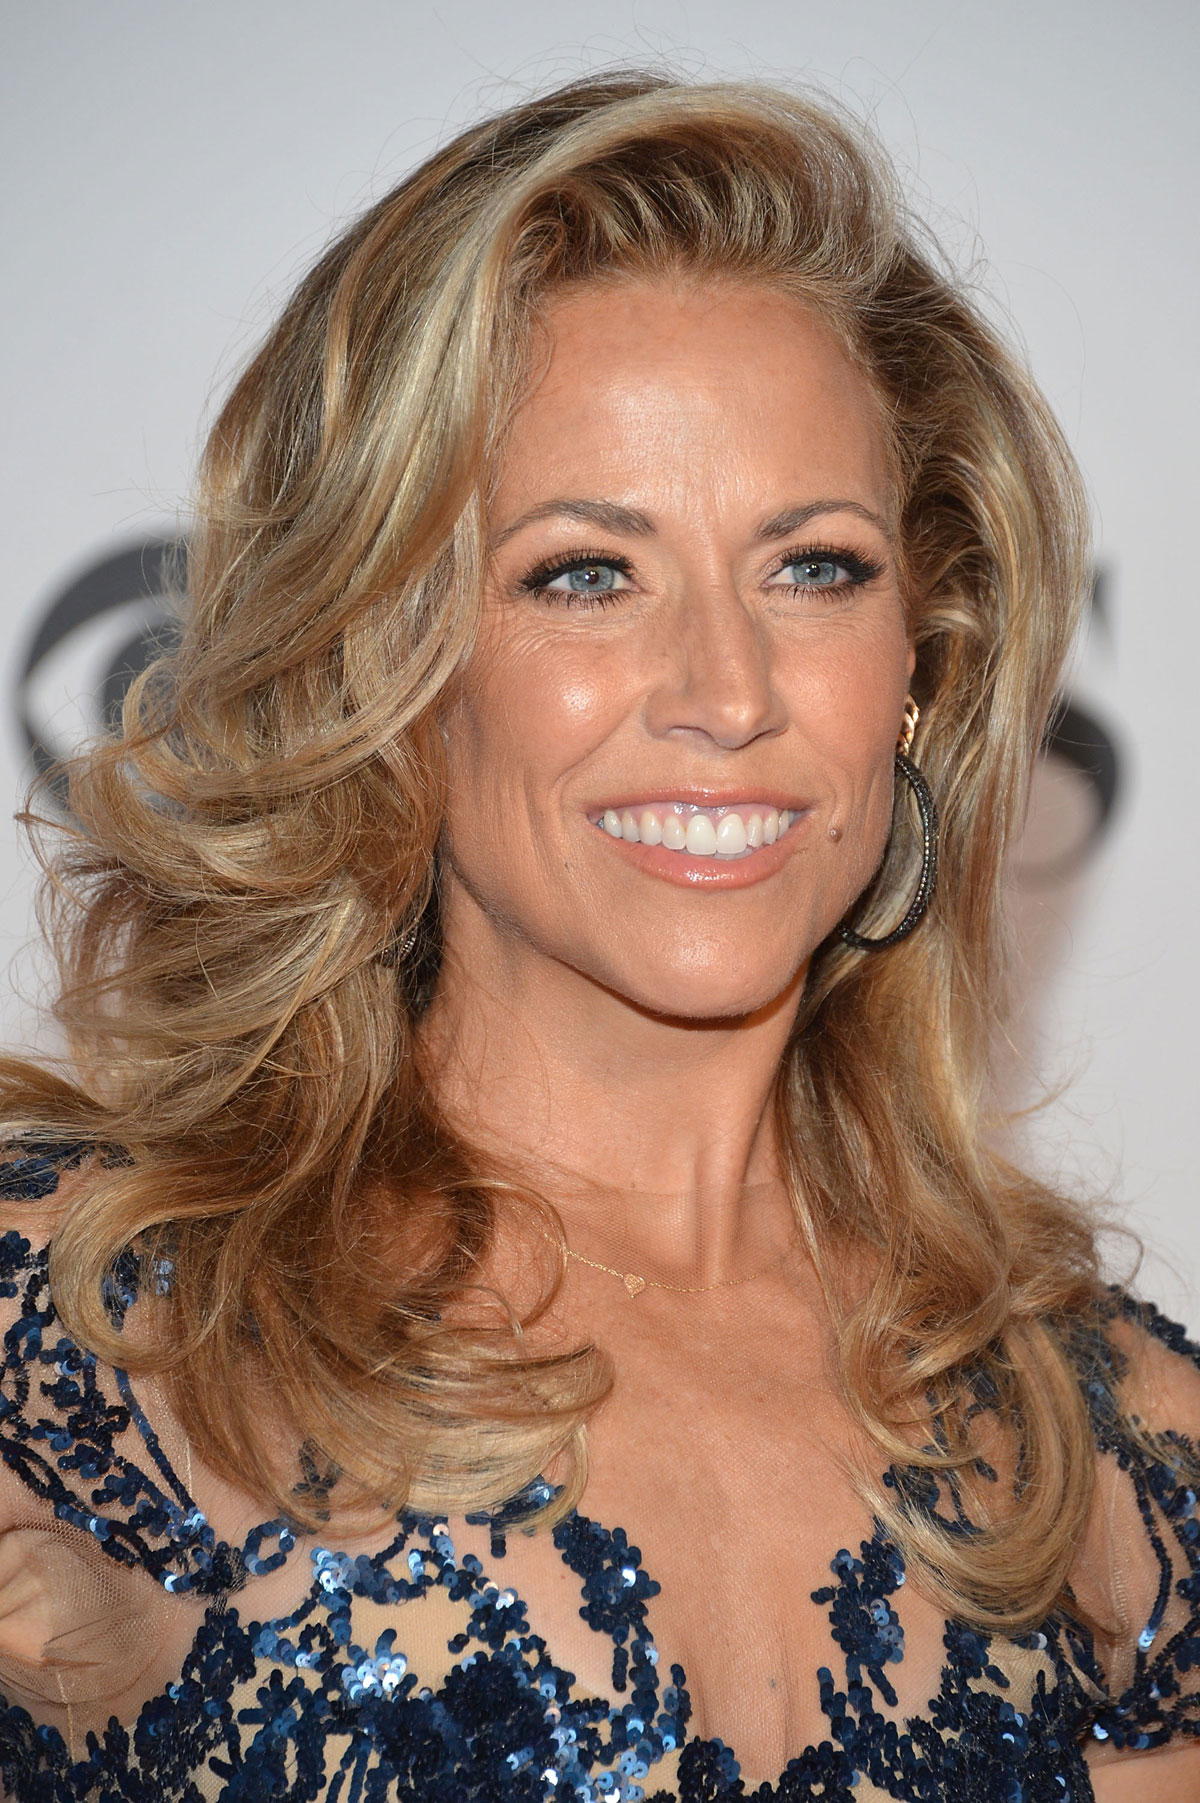 SHERYL CROW - SHERYL-CROW-at-66th-Annual-Tony-Awards-in-New-York-1